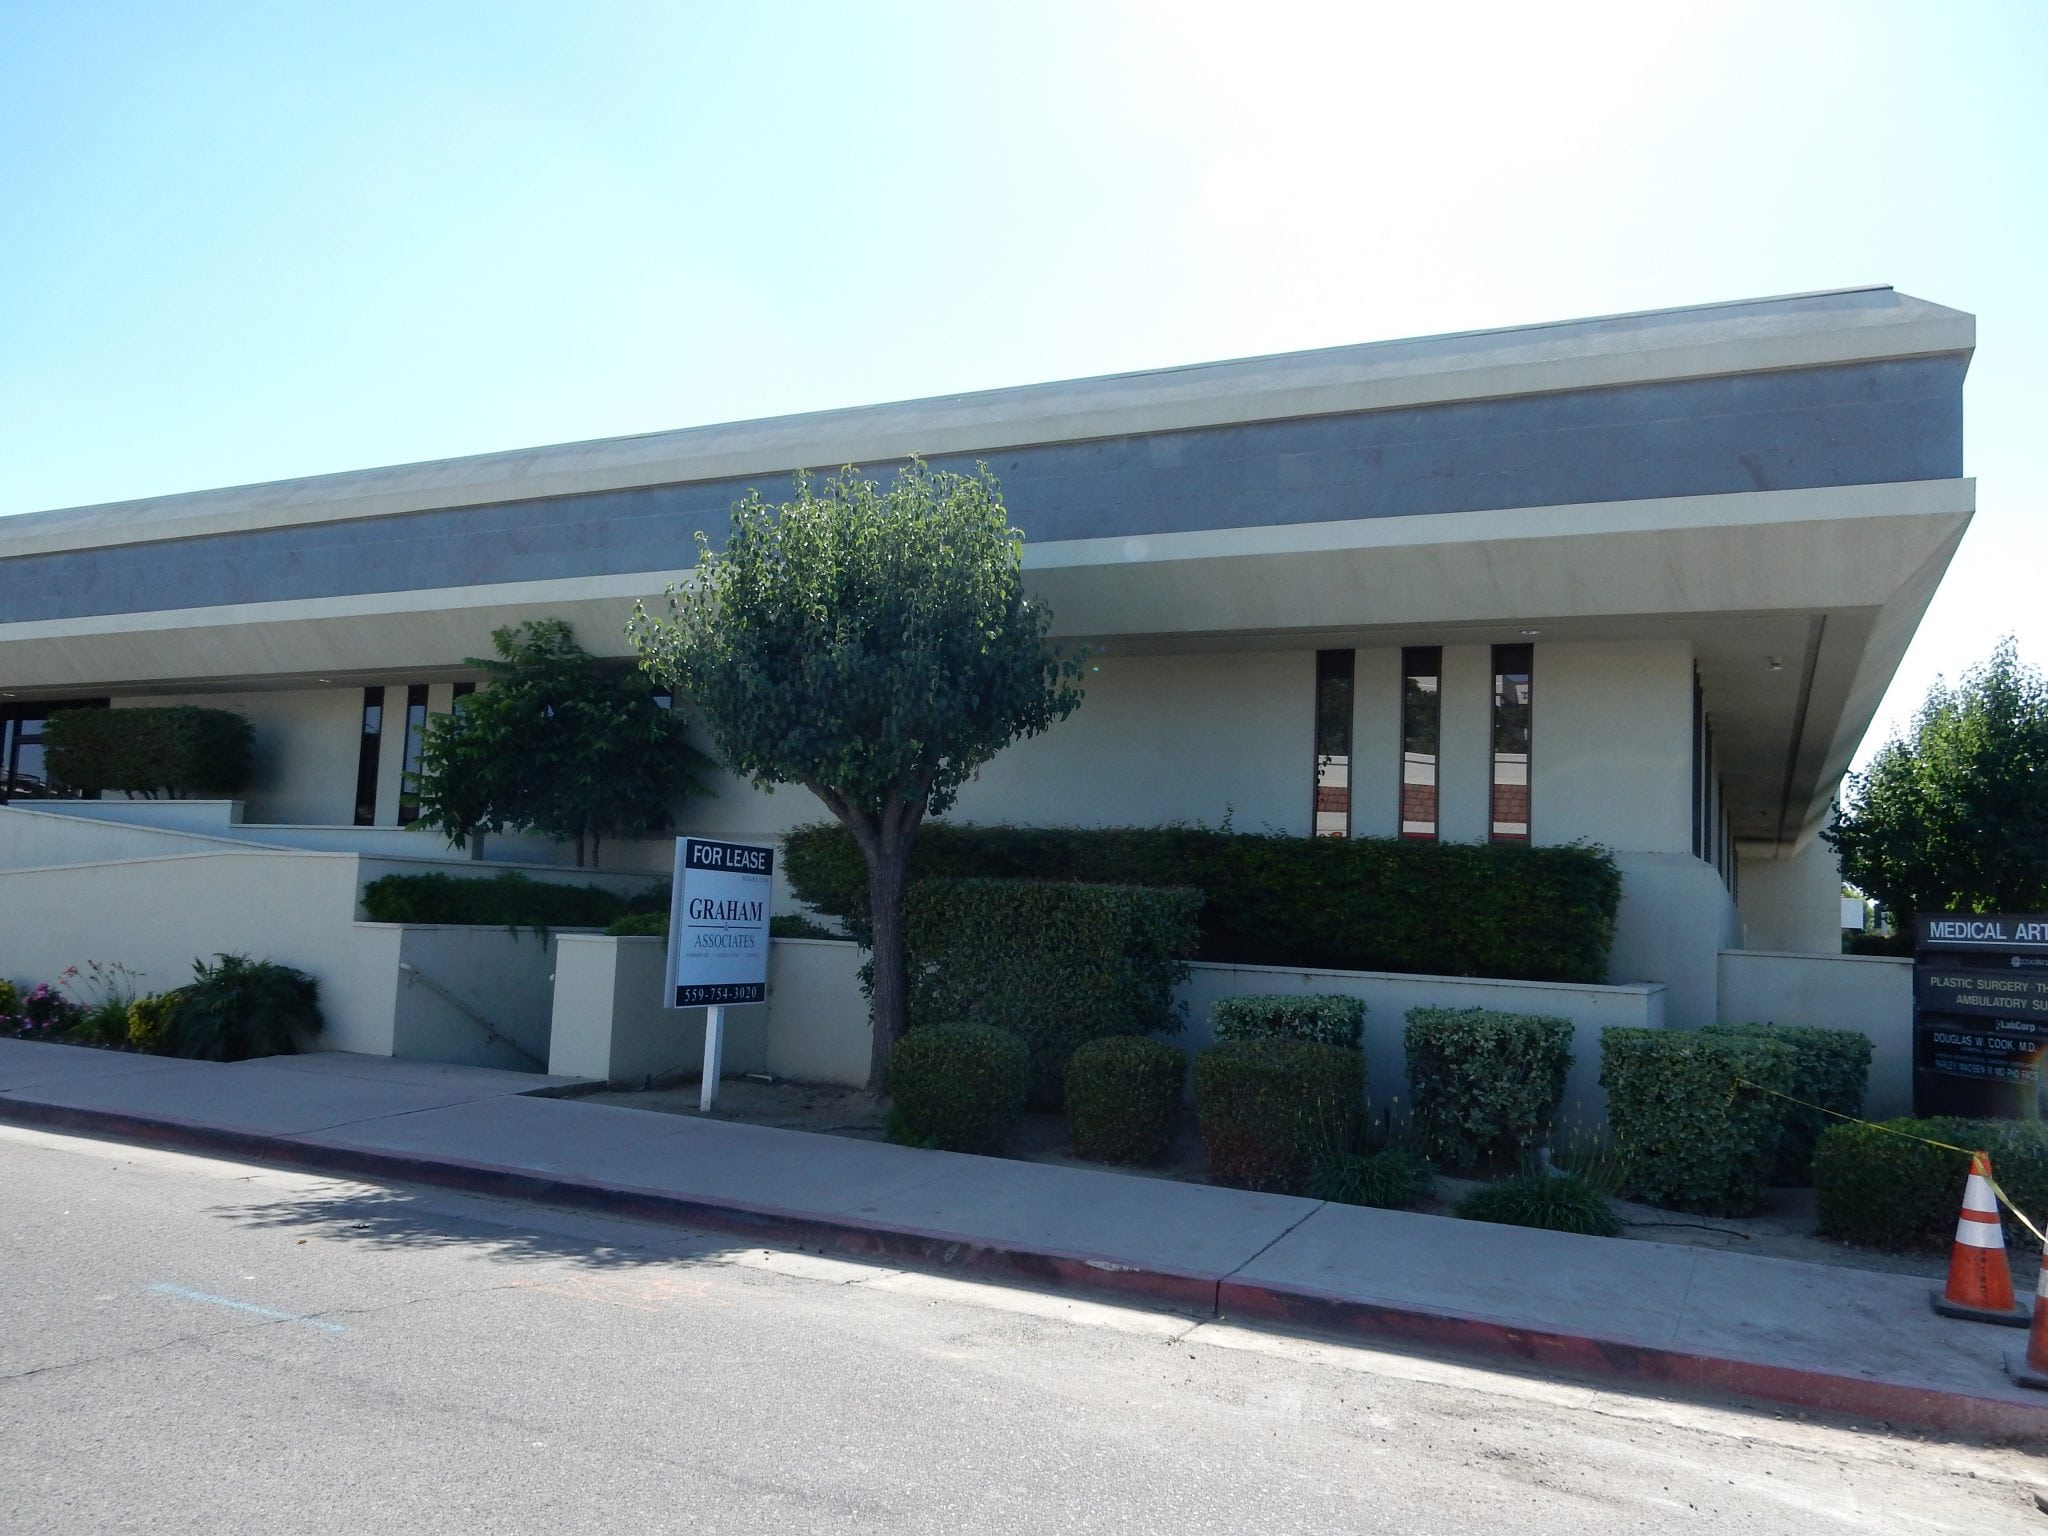 205 S West St - Suite D | Visalia, CA